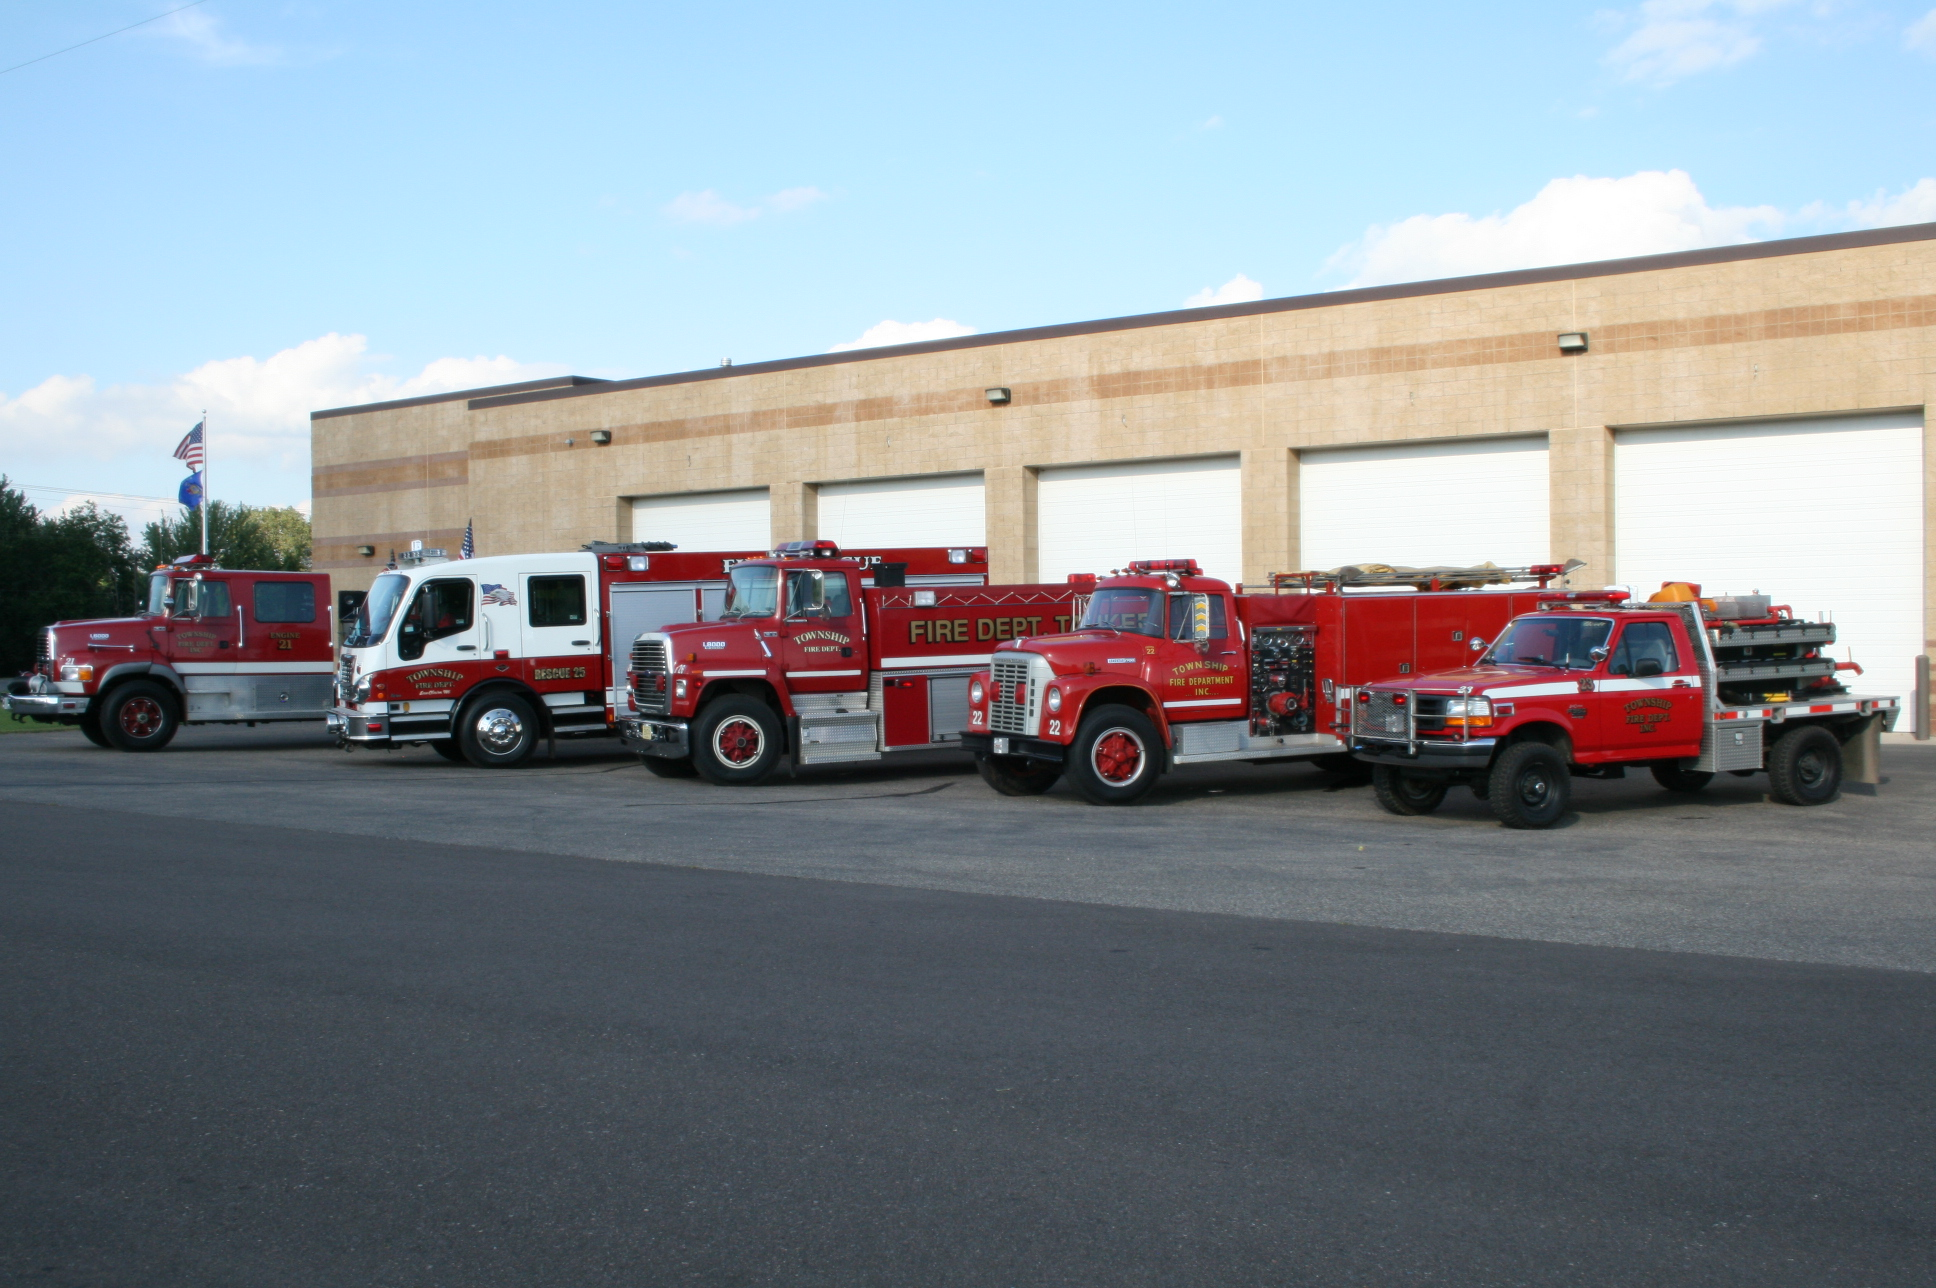 Washington Township truck lineup side